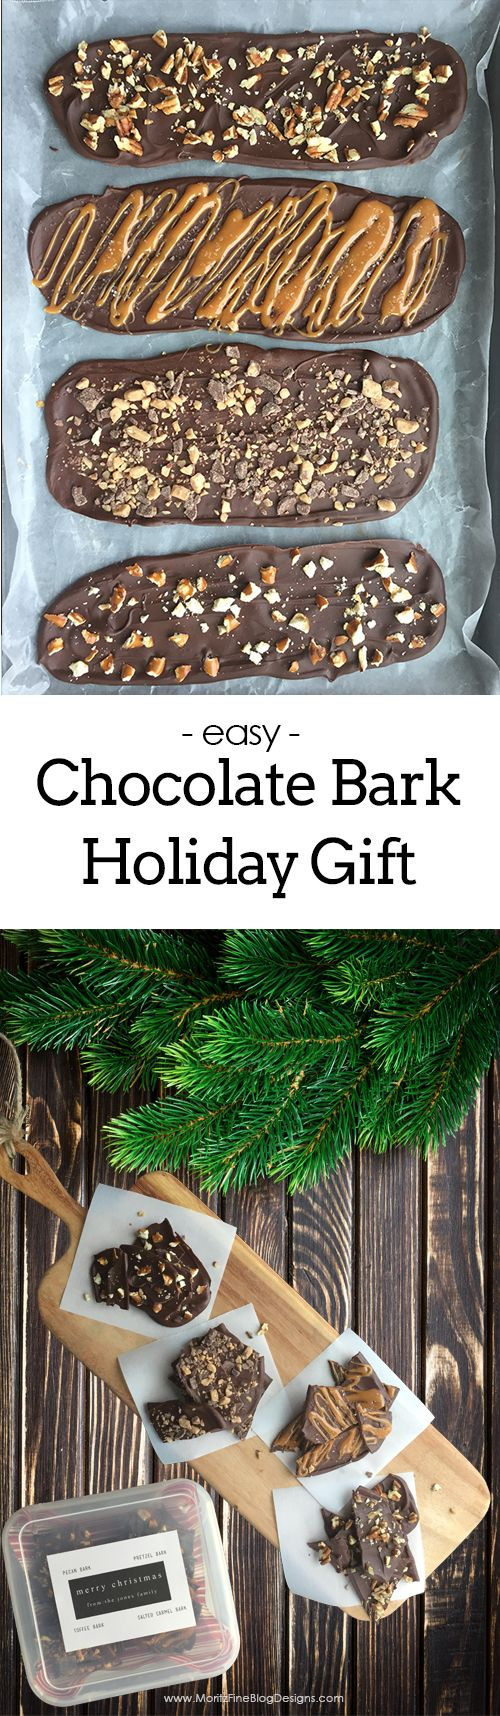 Best 25+ Chocolate gifts ideas on Pinterest | How to make candy ...